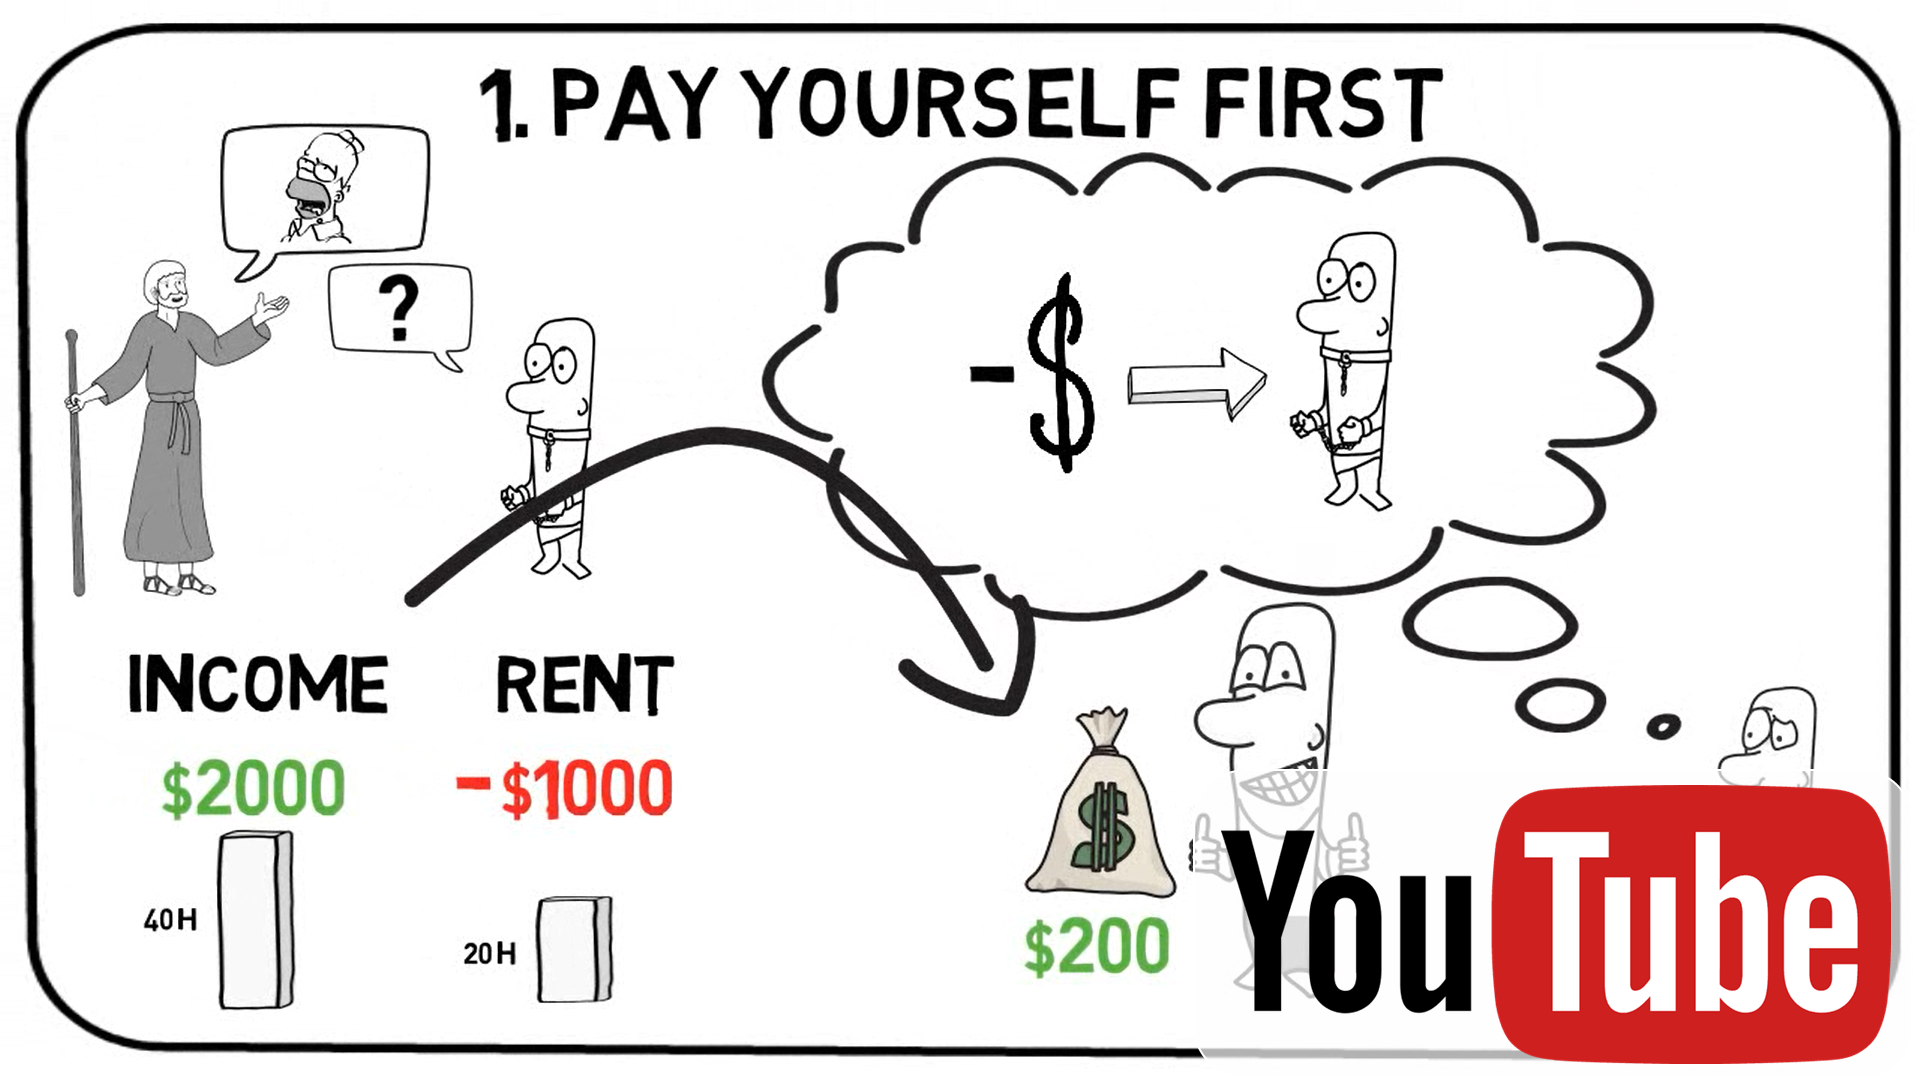 hight resolution of pay yourself first investing investing for beginners investing money investing in your 20s investing in your 30s saving money ideas saving money tips